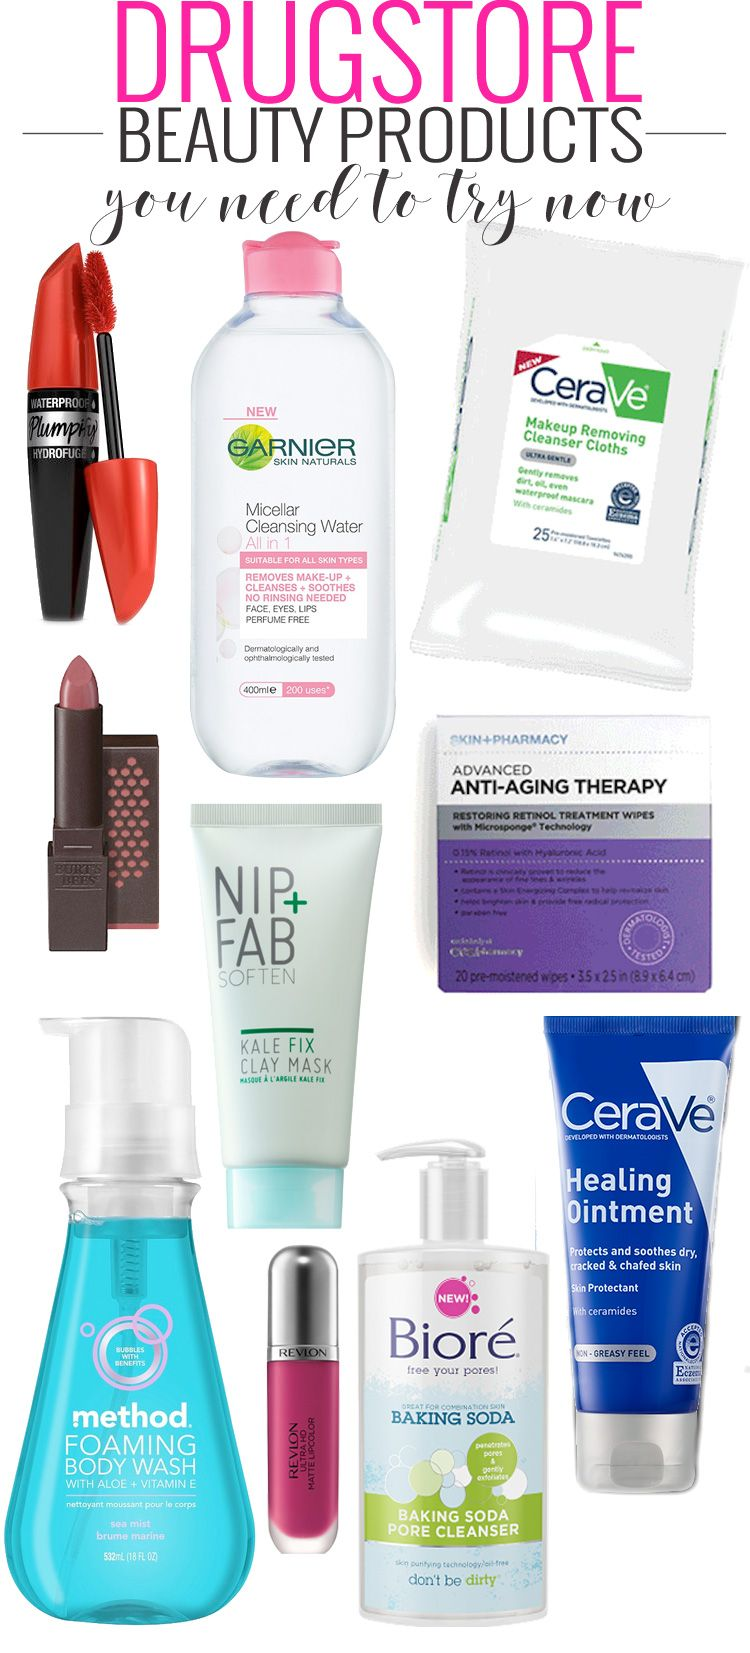 The 10 Drugstore Beauty Products You Need to Try NOW.